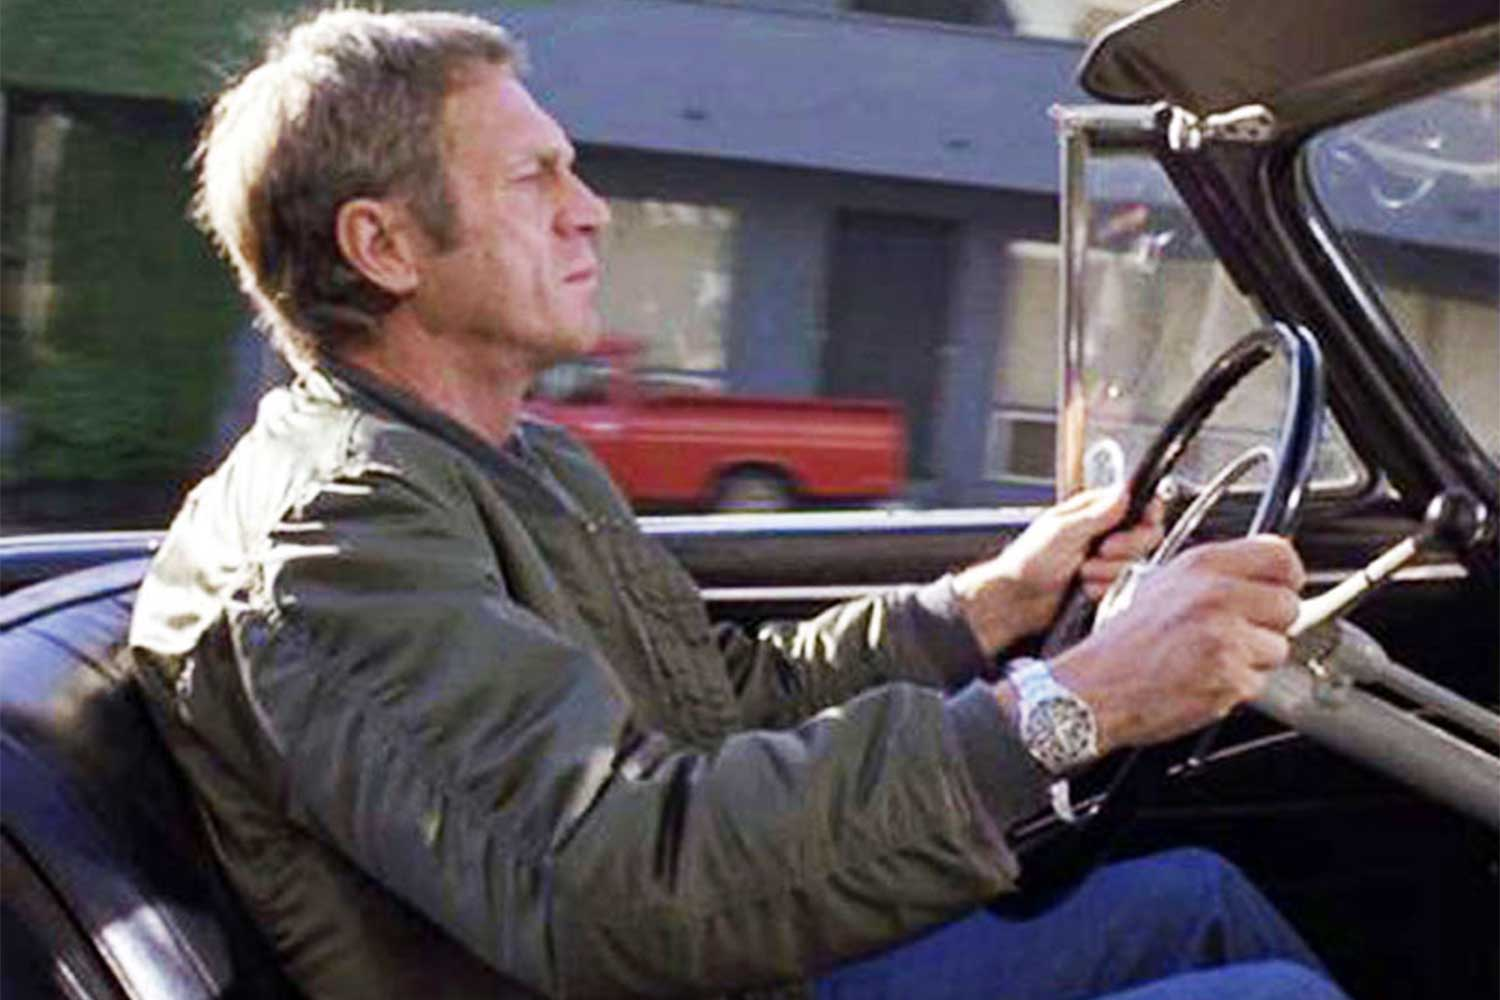 A screen grab from the 1980 film, The Hunter showing Steve McQueen with his 5512 Submariner on his wrist (Image: rolexmagazine.com)